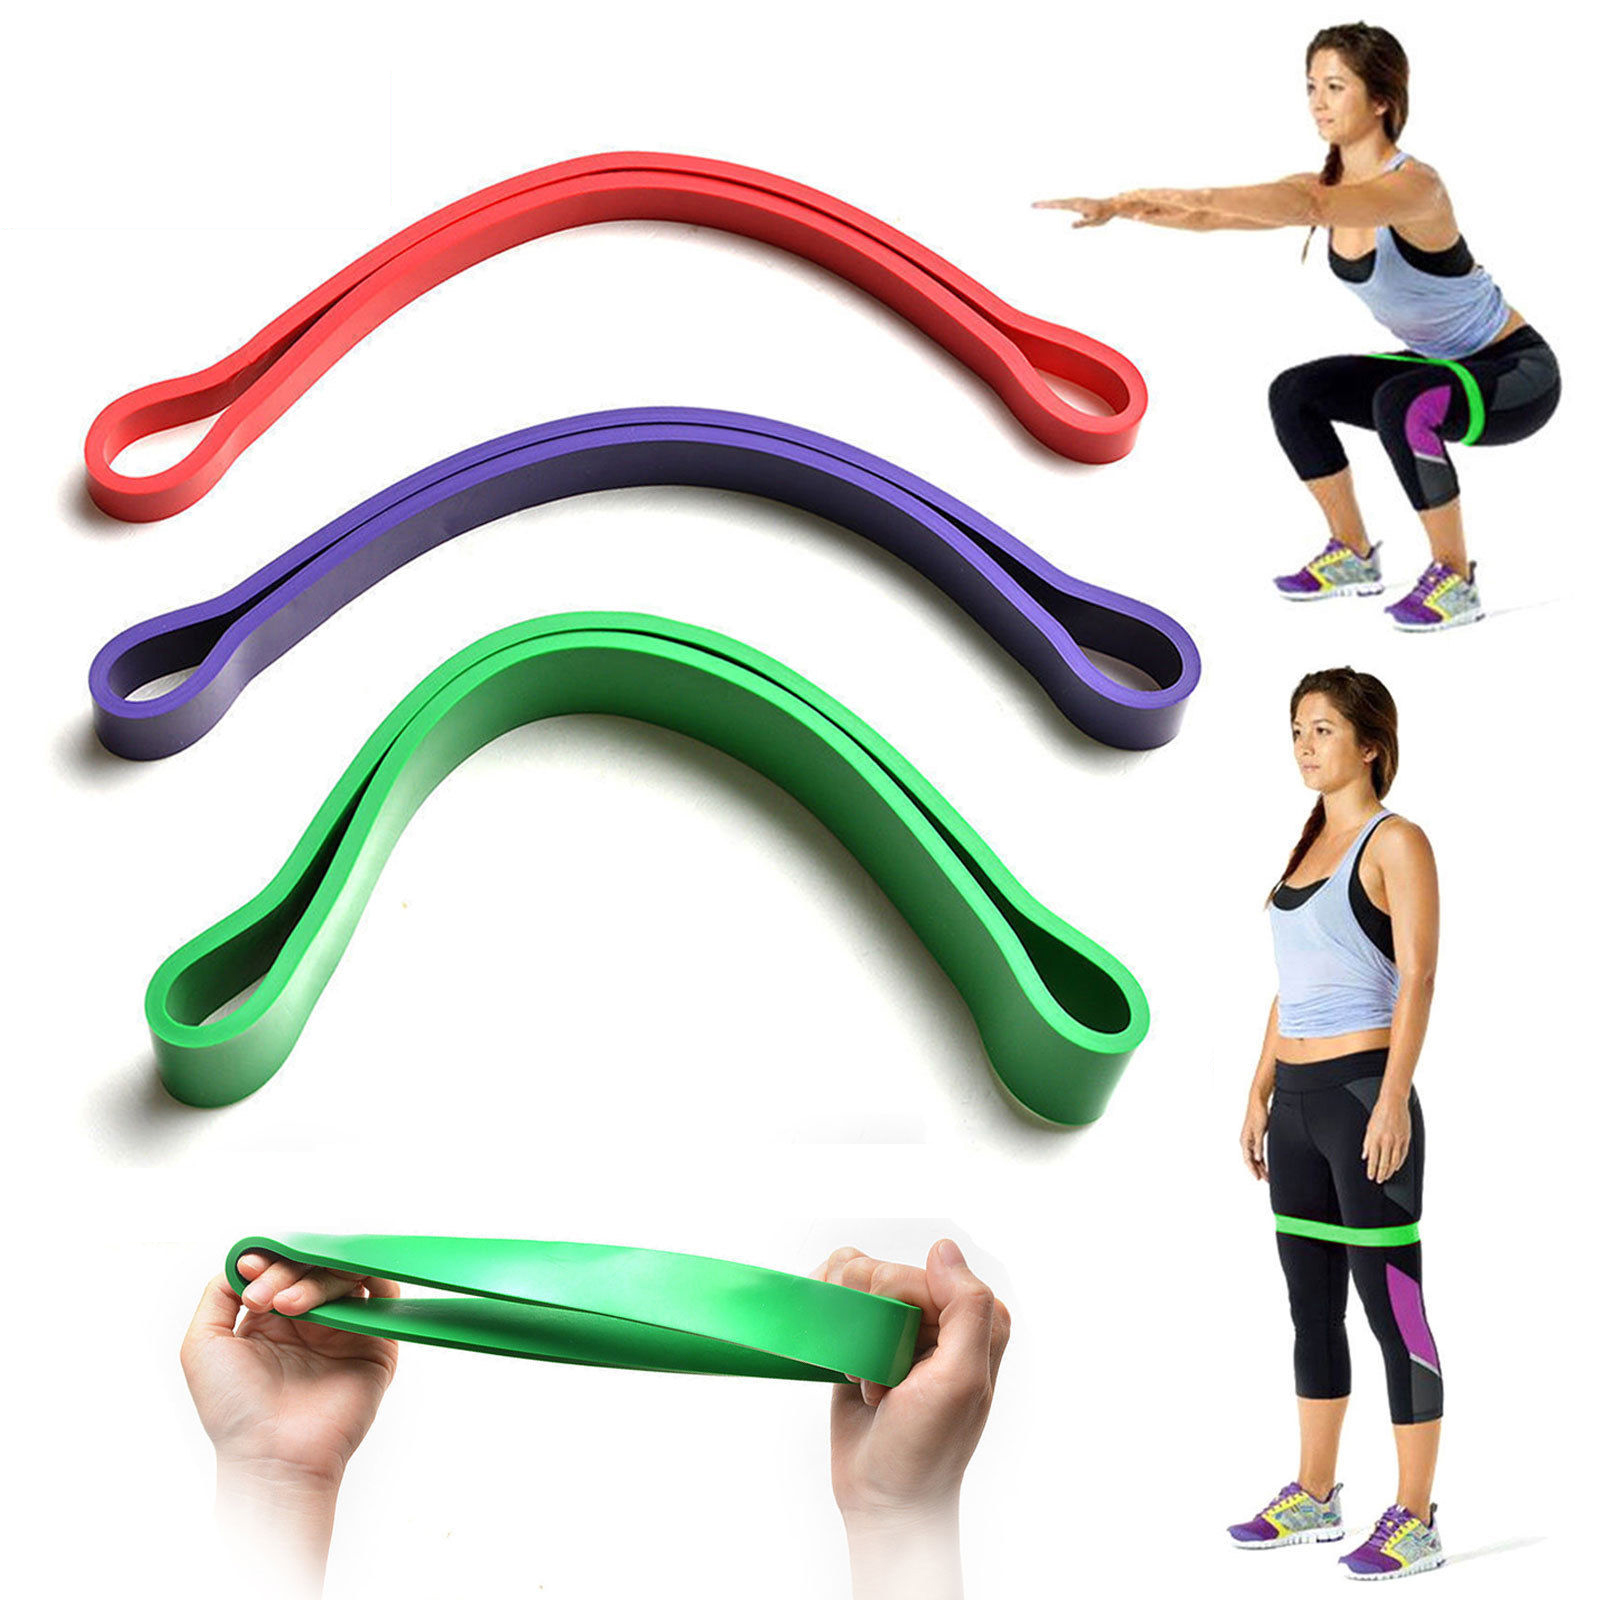 3in1 Set Heavy Duty Resistance Band Loop Exercise Yoga Workout Power Gym Fitness Sport